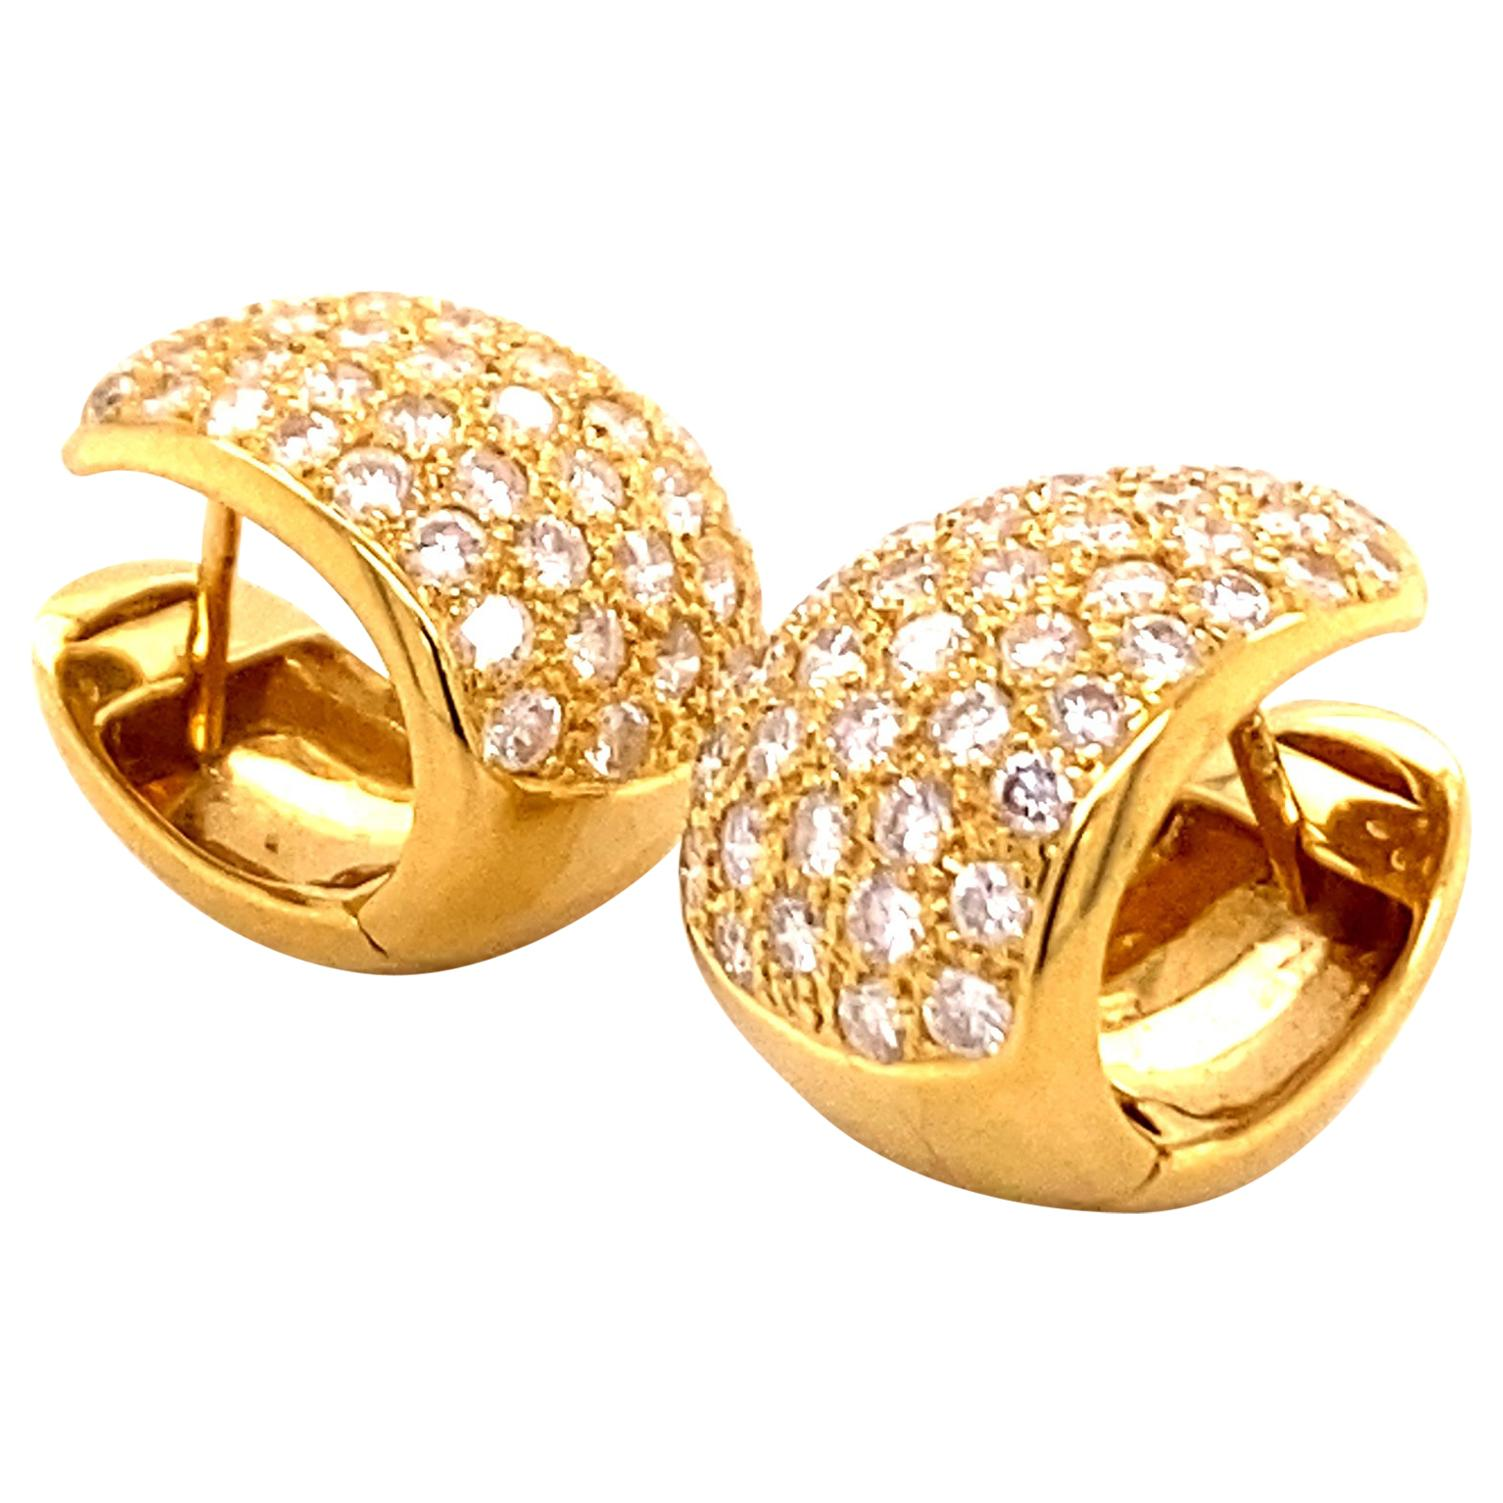 Pavé Diamond Clip-On Earrings in 18 Karat Yellow Gold